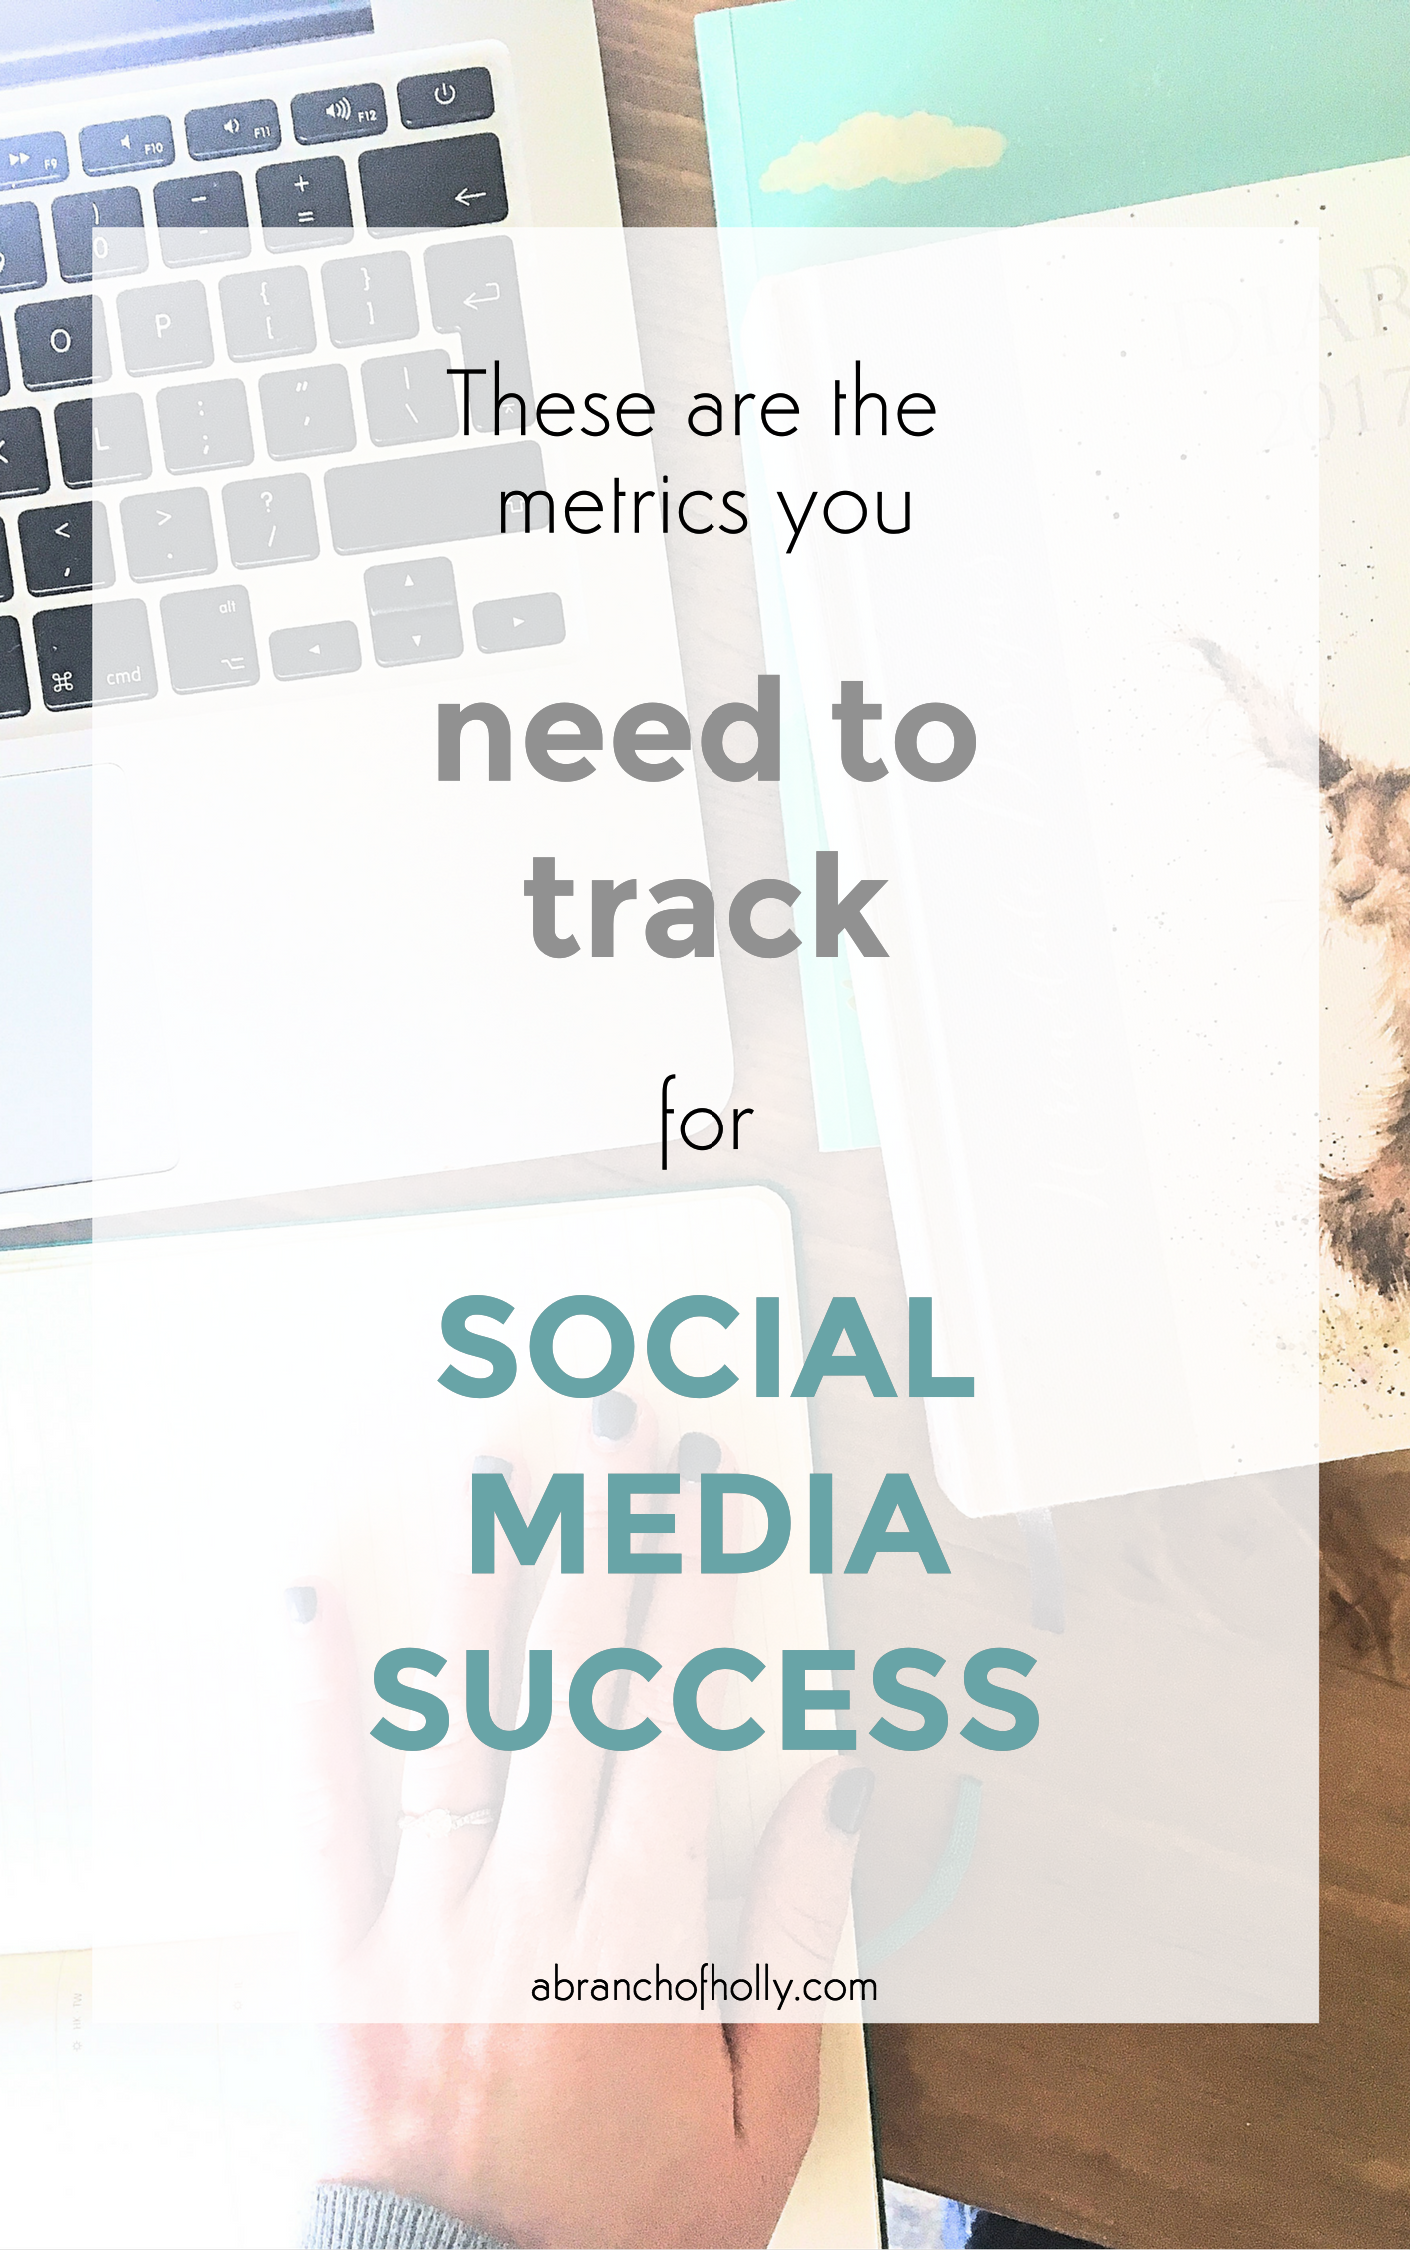 these are the metrics you need to track for social media success